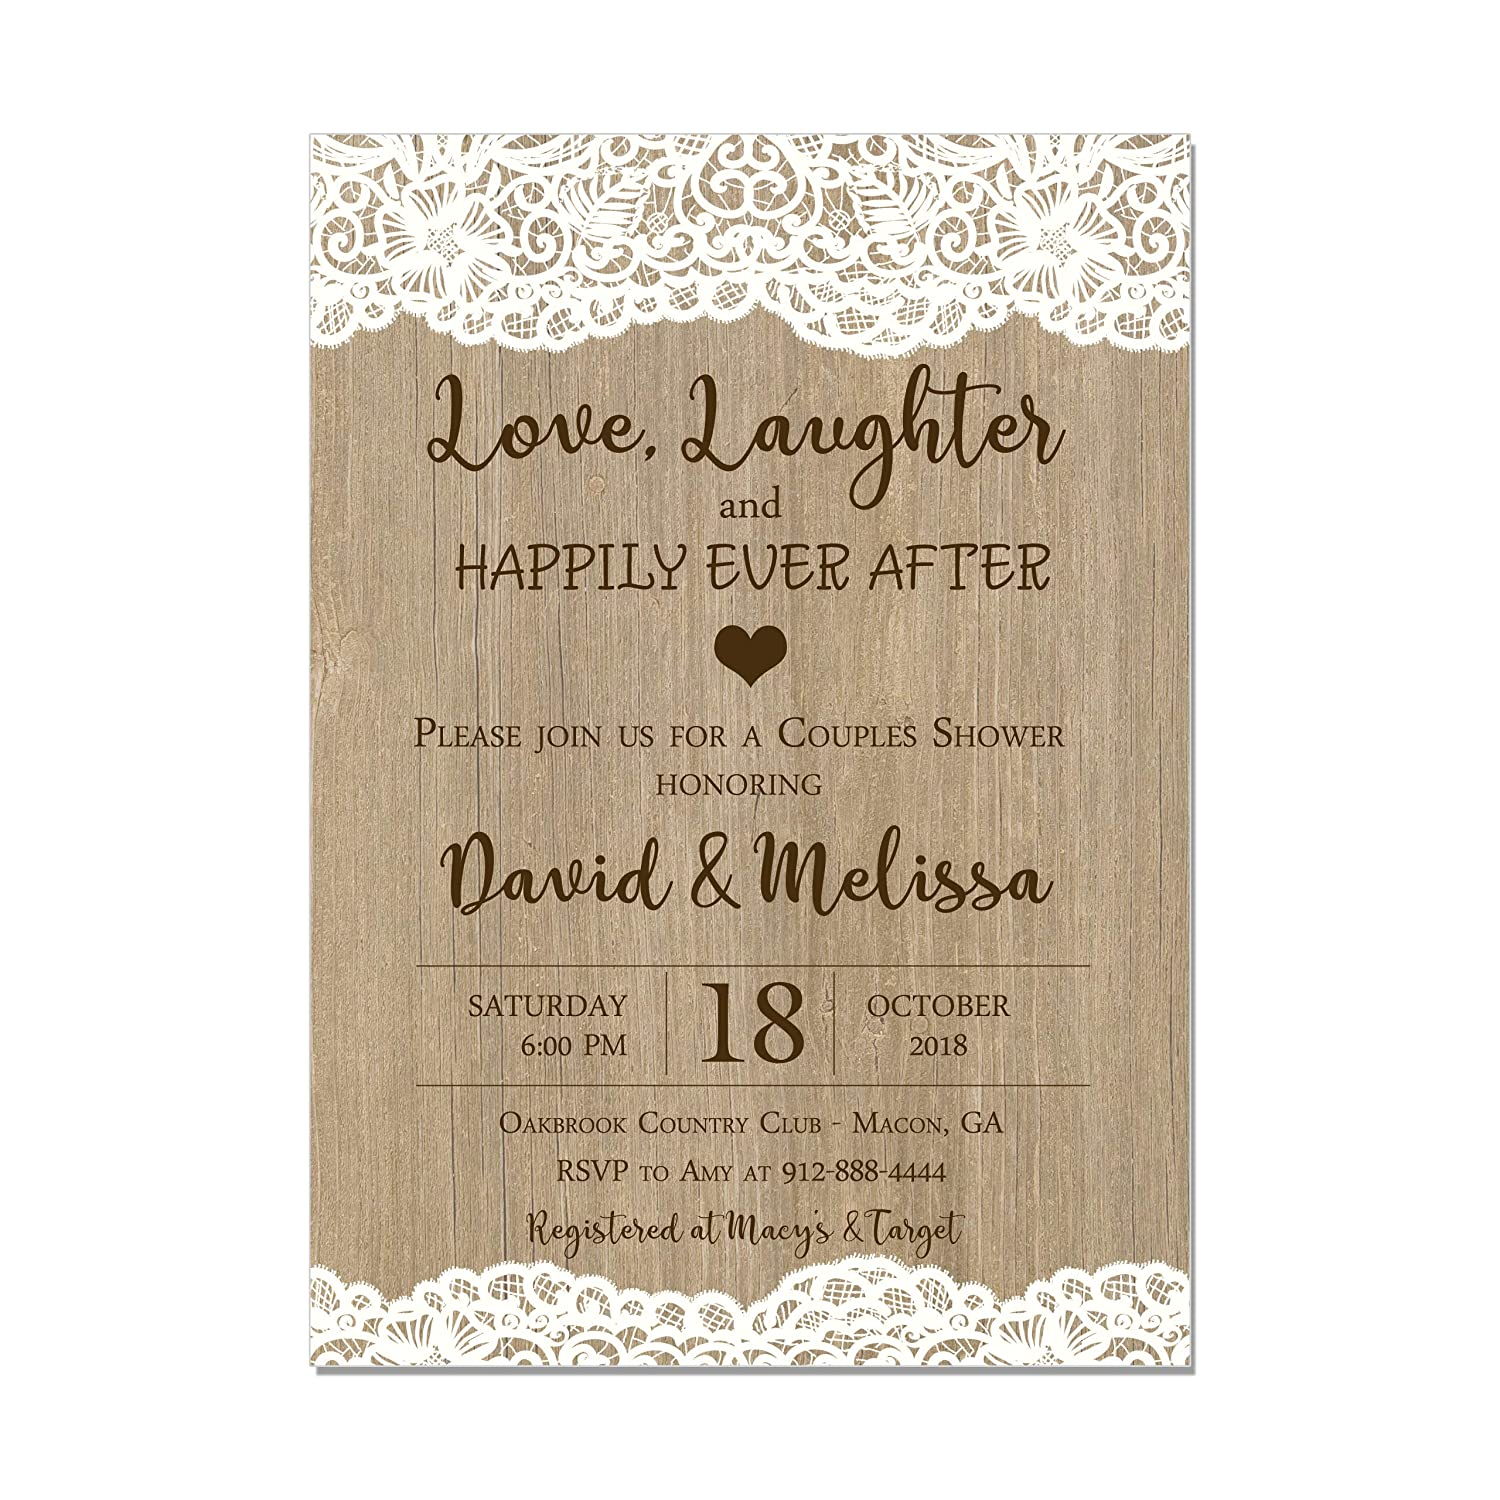 Amazon Com Couples Wedding Shower Invitation Lace And Wood Love